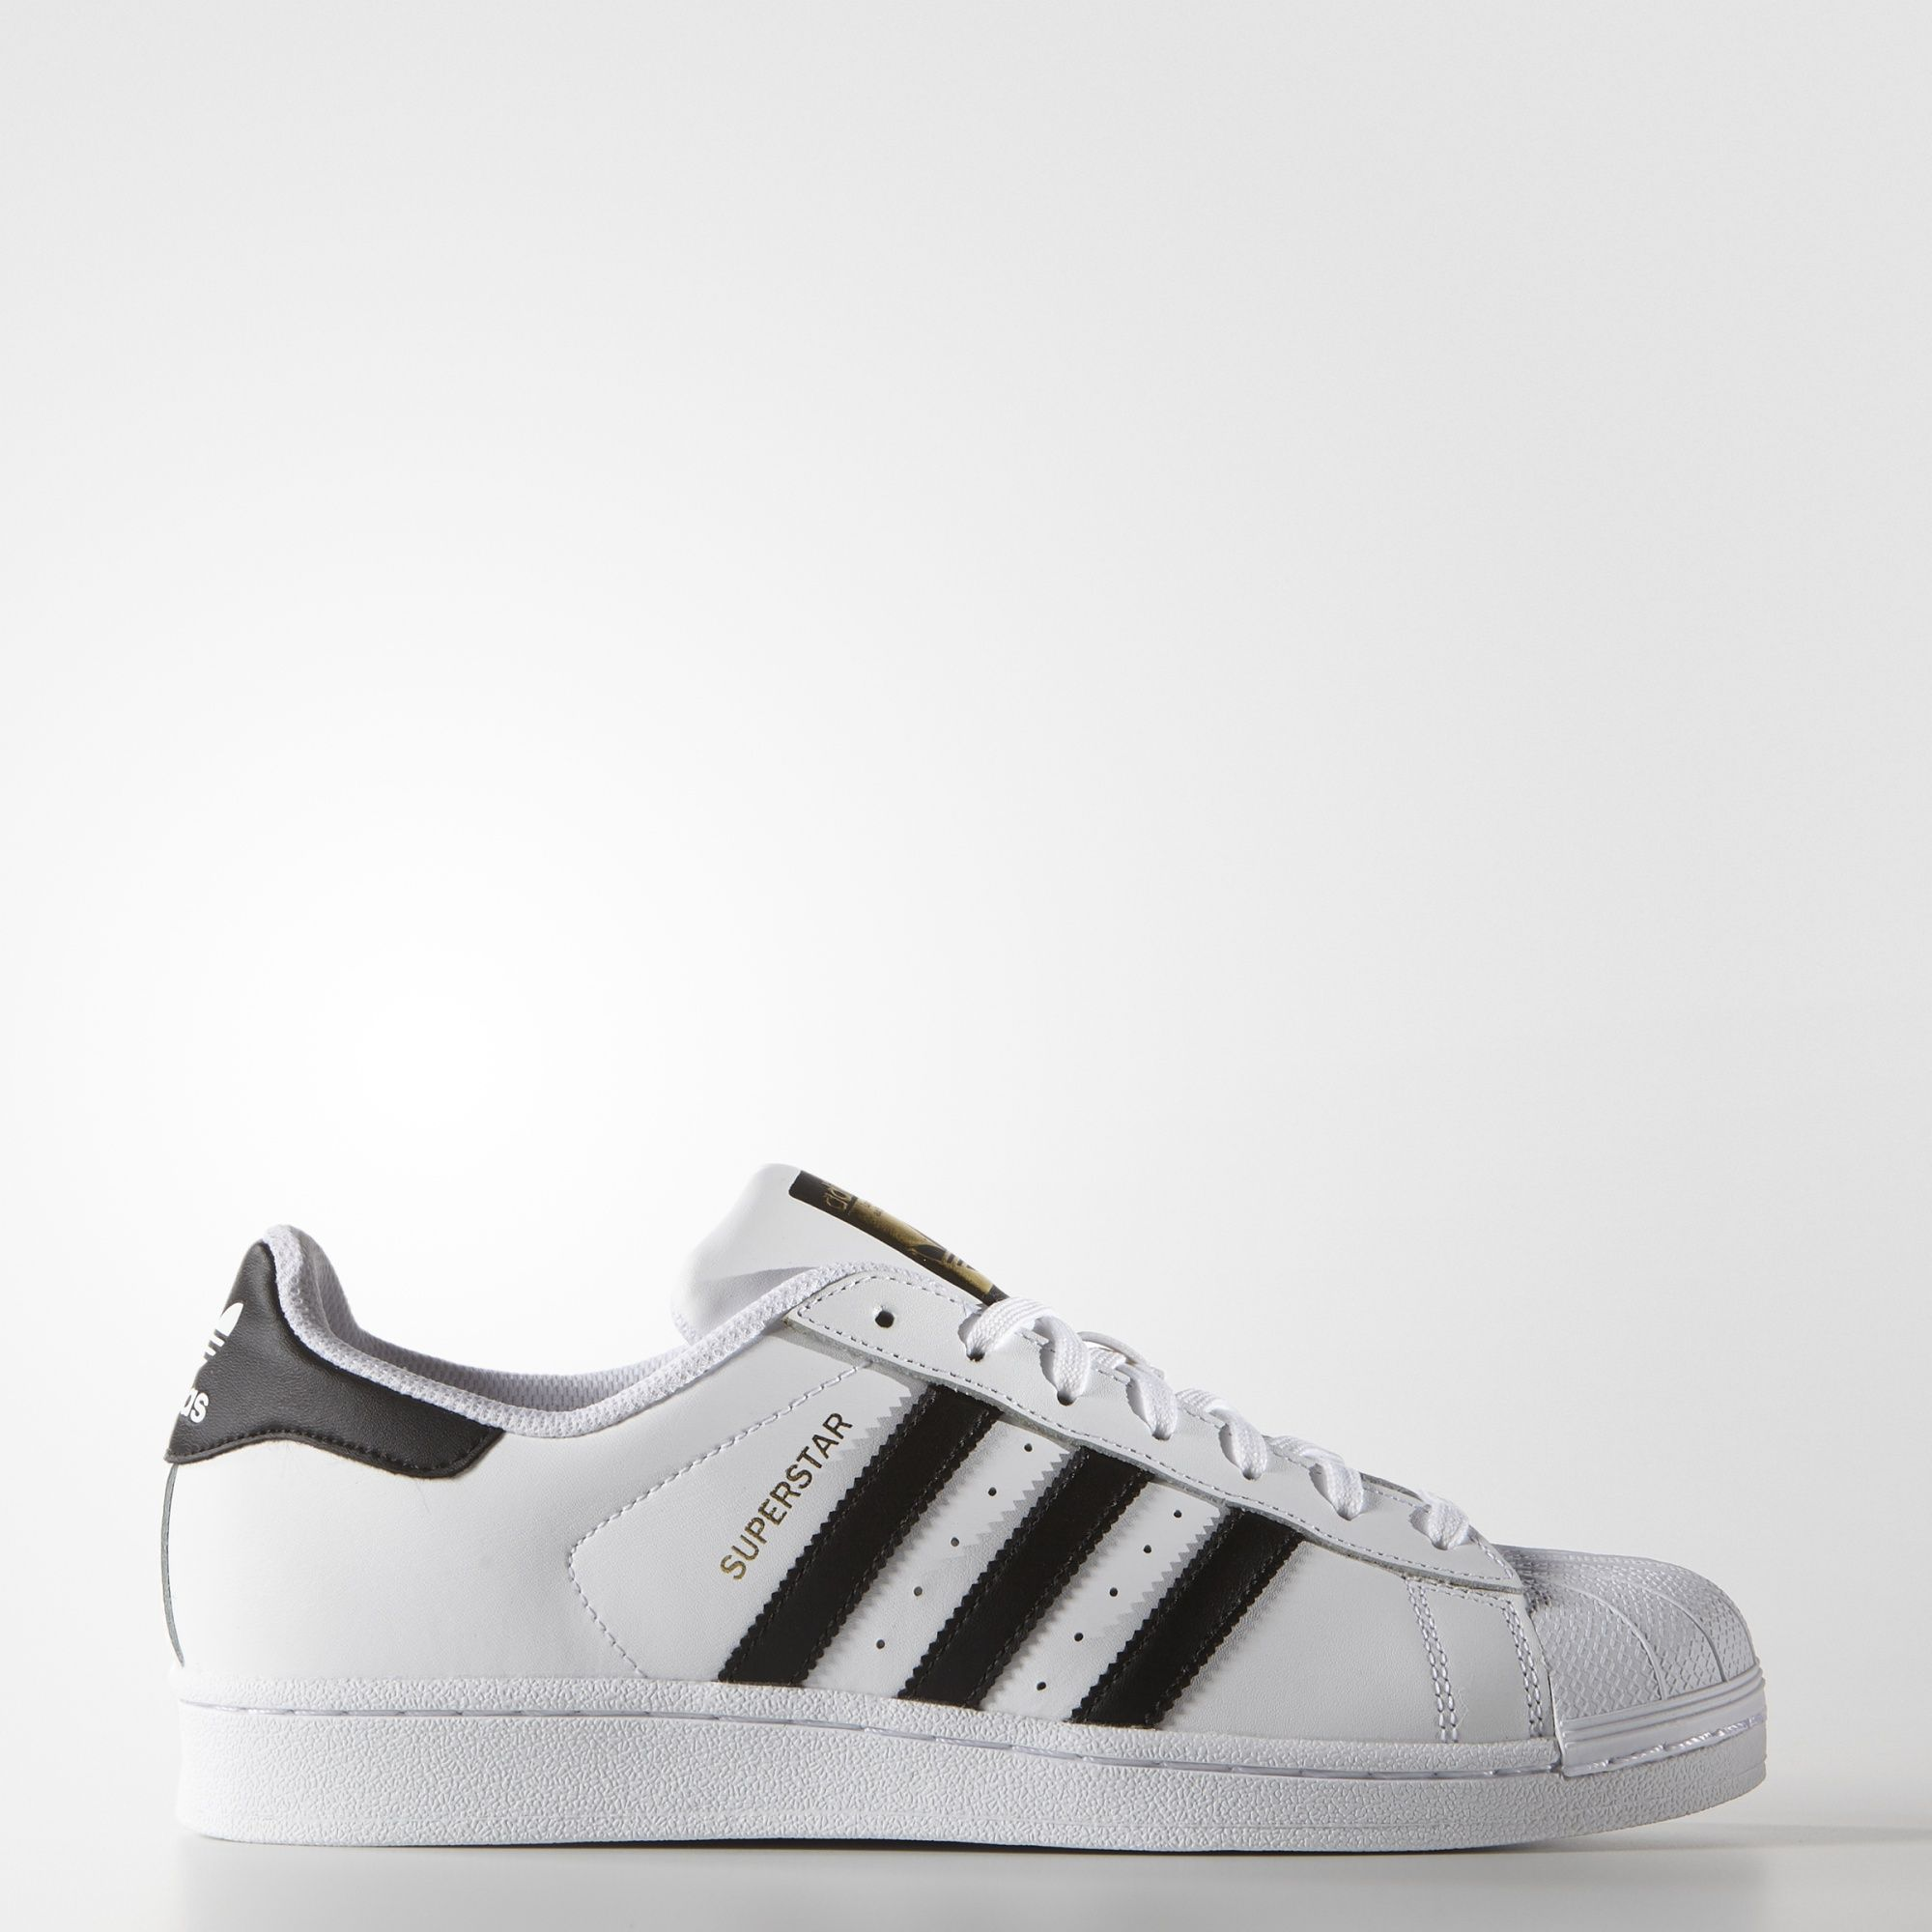 ADIDAS ORIGINALS Men 's Old School Trefoil Leather Shell Toe White Sneakers Shoes